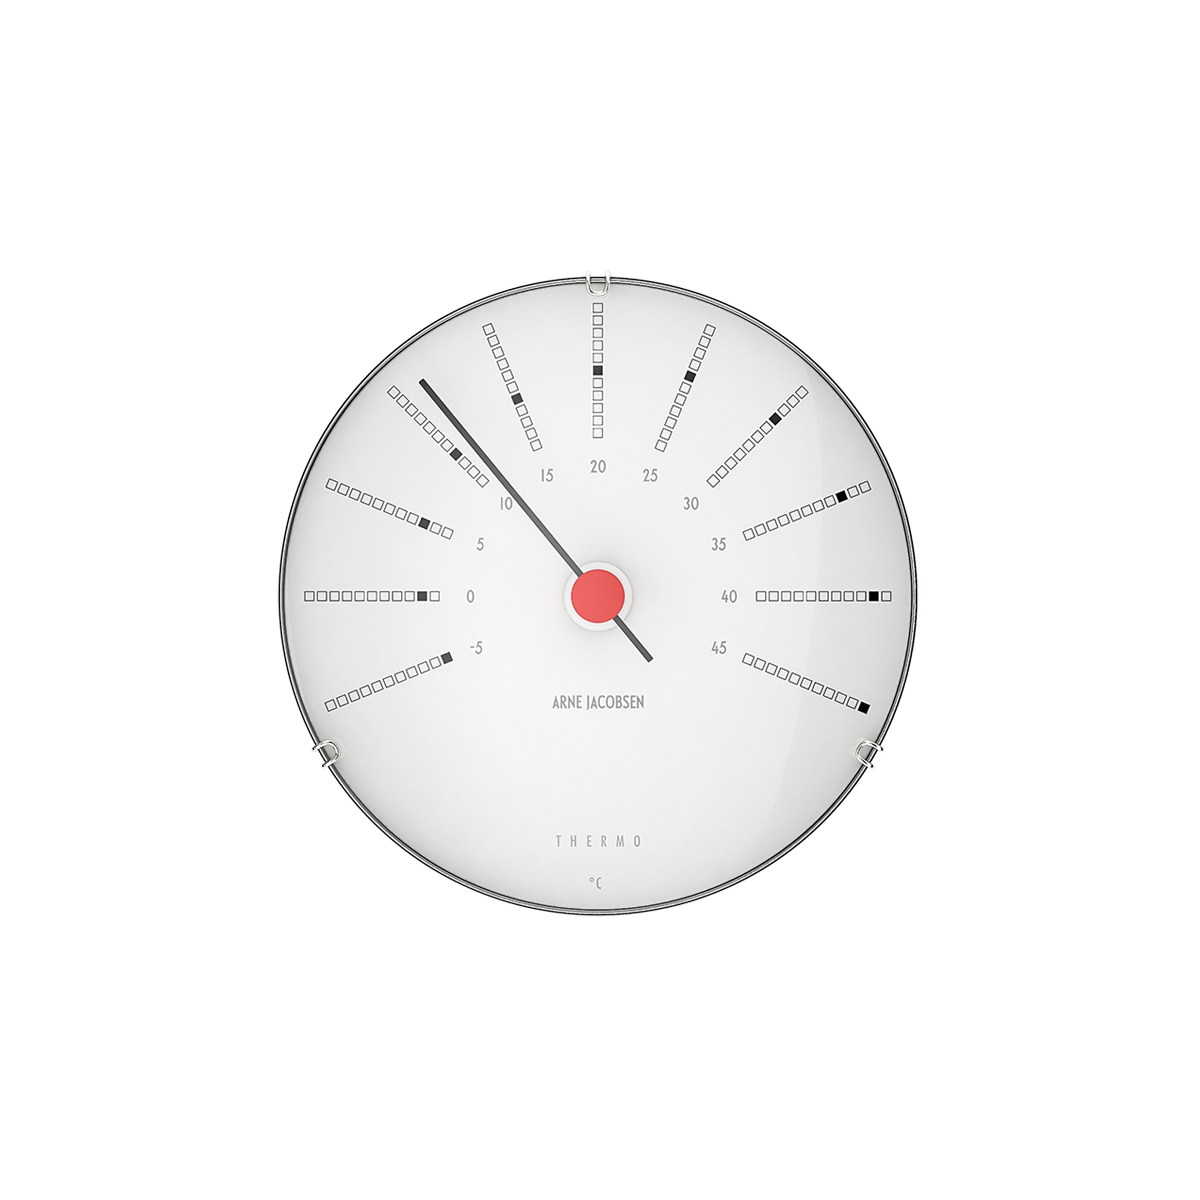 Arne Jacobsen Wall Weather Station Thermometer